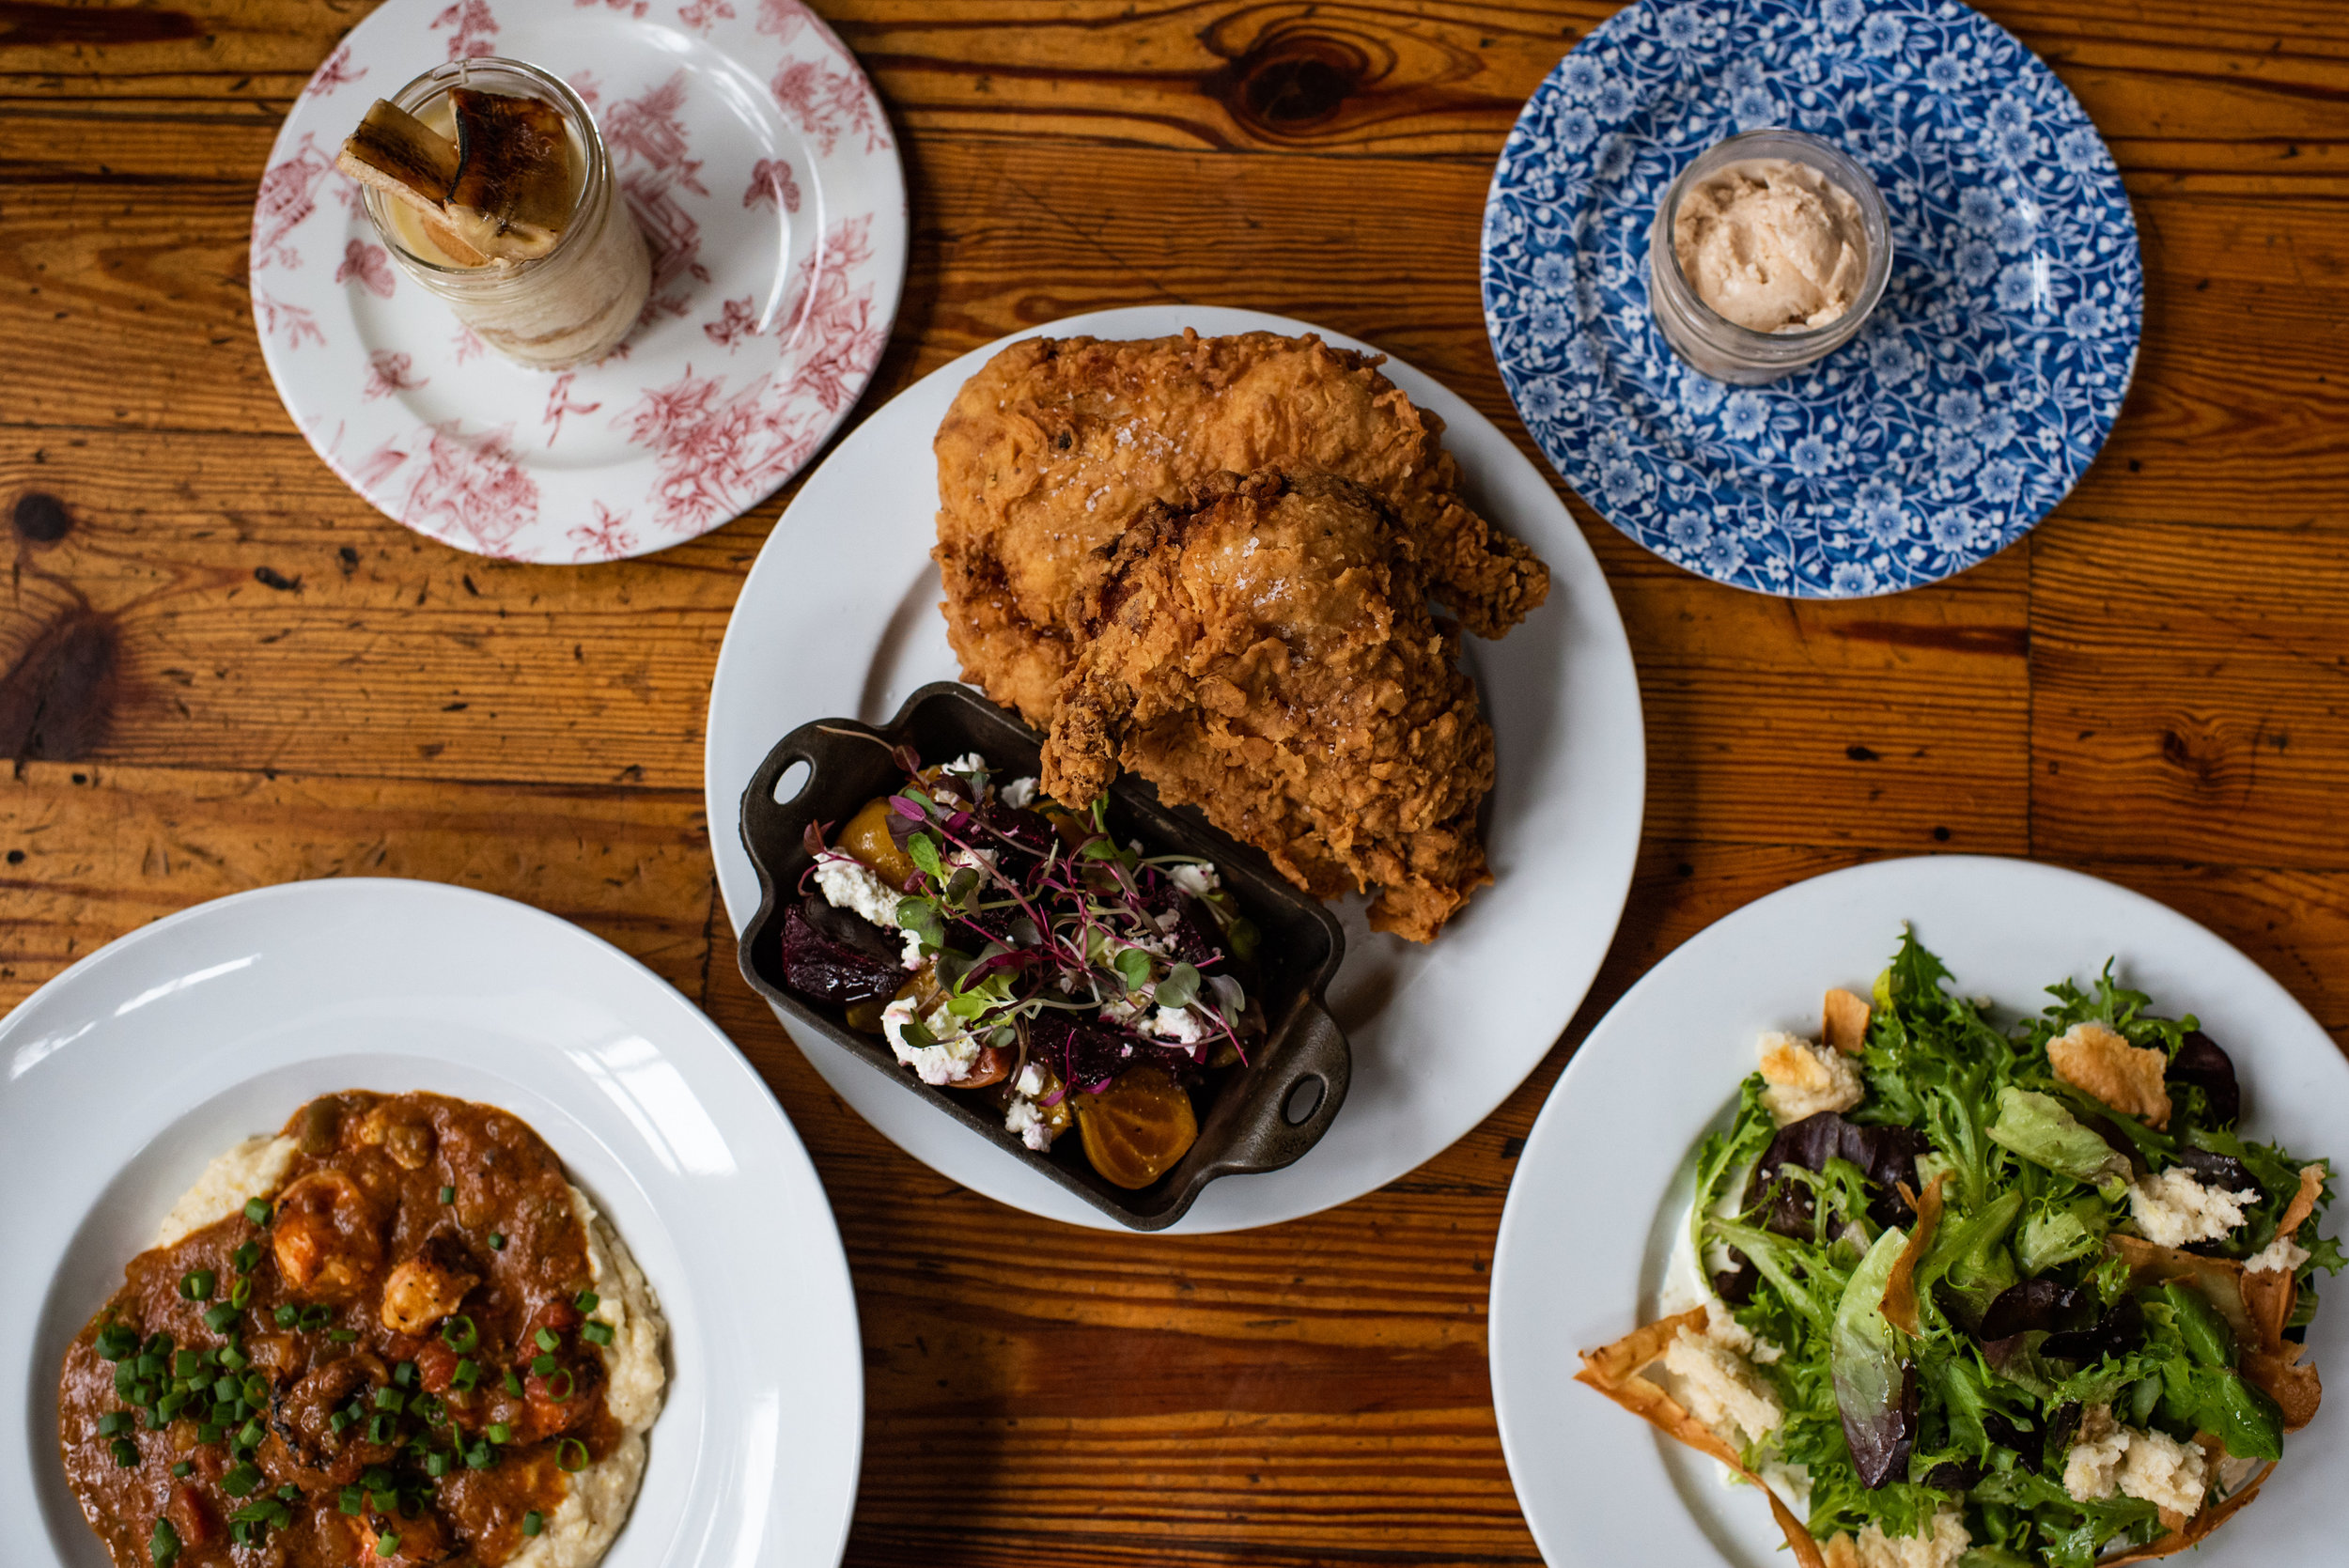 Table & Main's Southern Fried Chicken, Farm Lettuce Salad, Banana Pudding